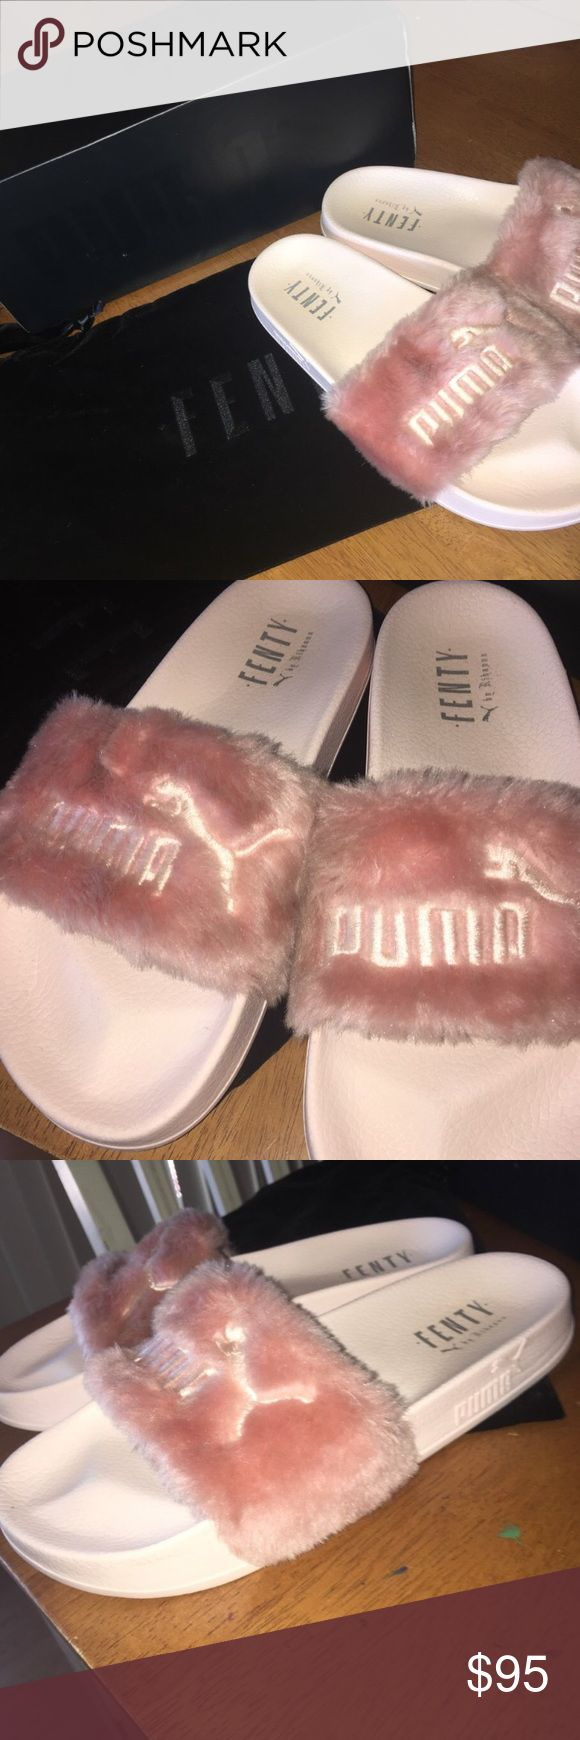 Rihanna Fenty slides Pretty much new Rihanna Fenty slides which includes box and dust bag. I've only worn these 5 times. I love them but don't use them as much as I'd like to. Firm on price because they can go for a lot more. Puma Shoes Sandals